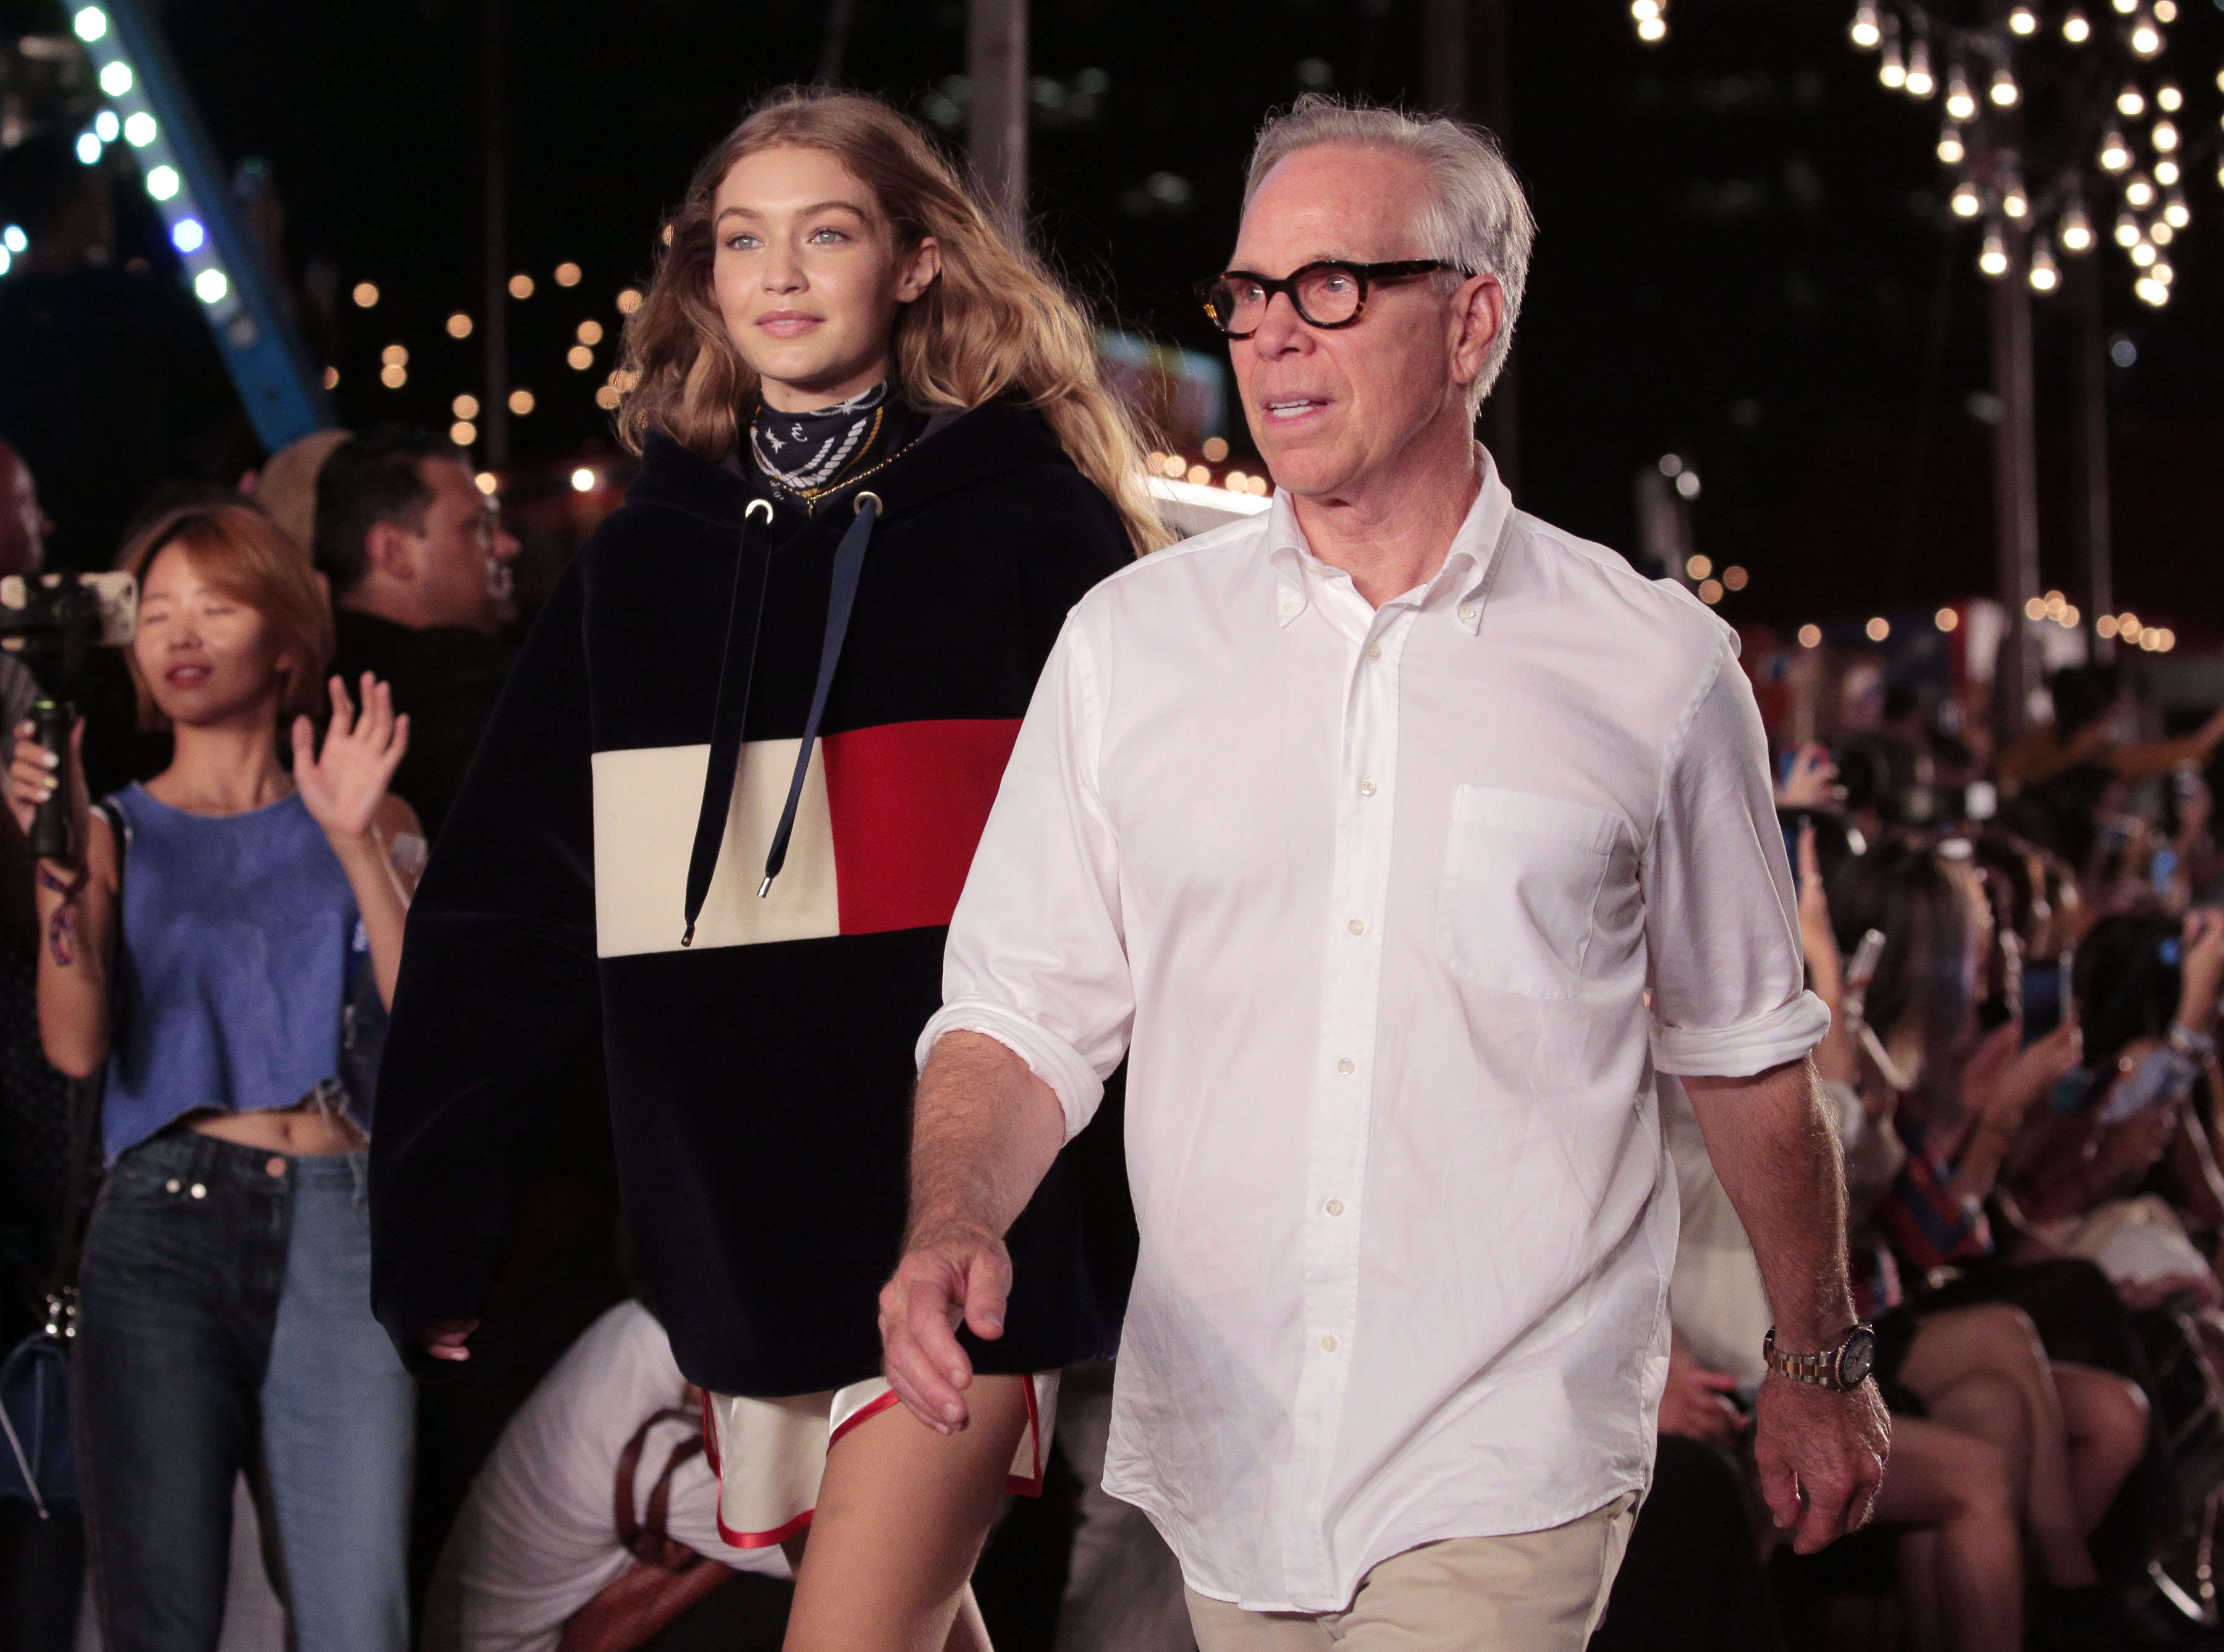 Tommy hilfiger sfilata primavera estate 2017 fashion show los angeles venice beach gigi - Tommy hilfiger show ...